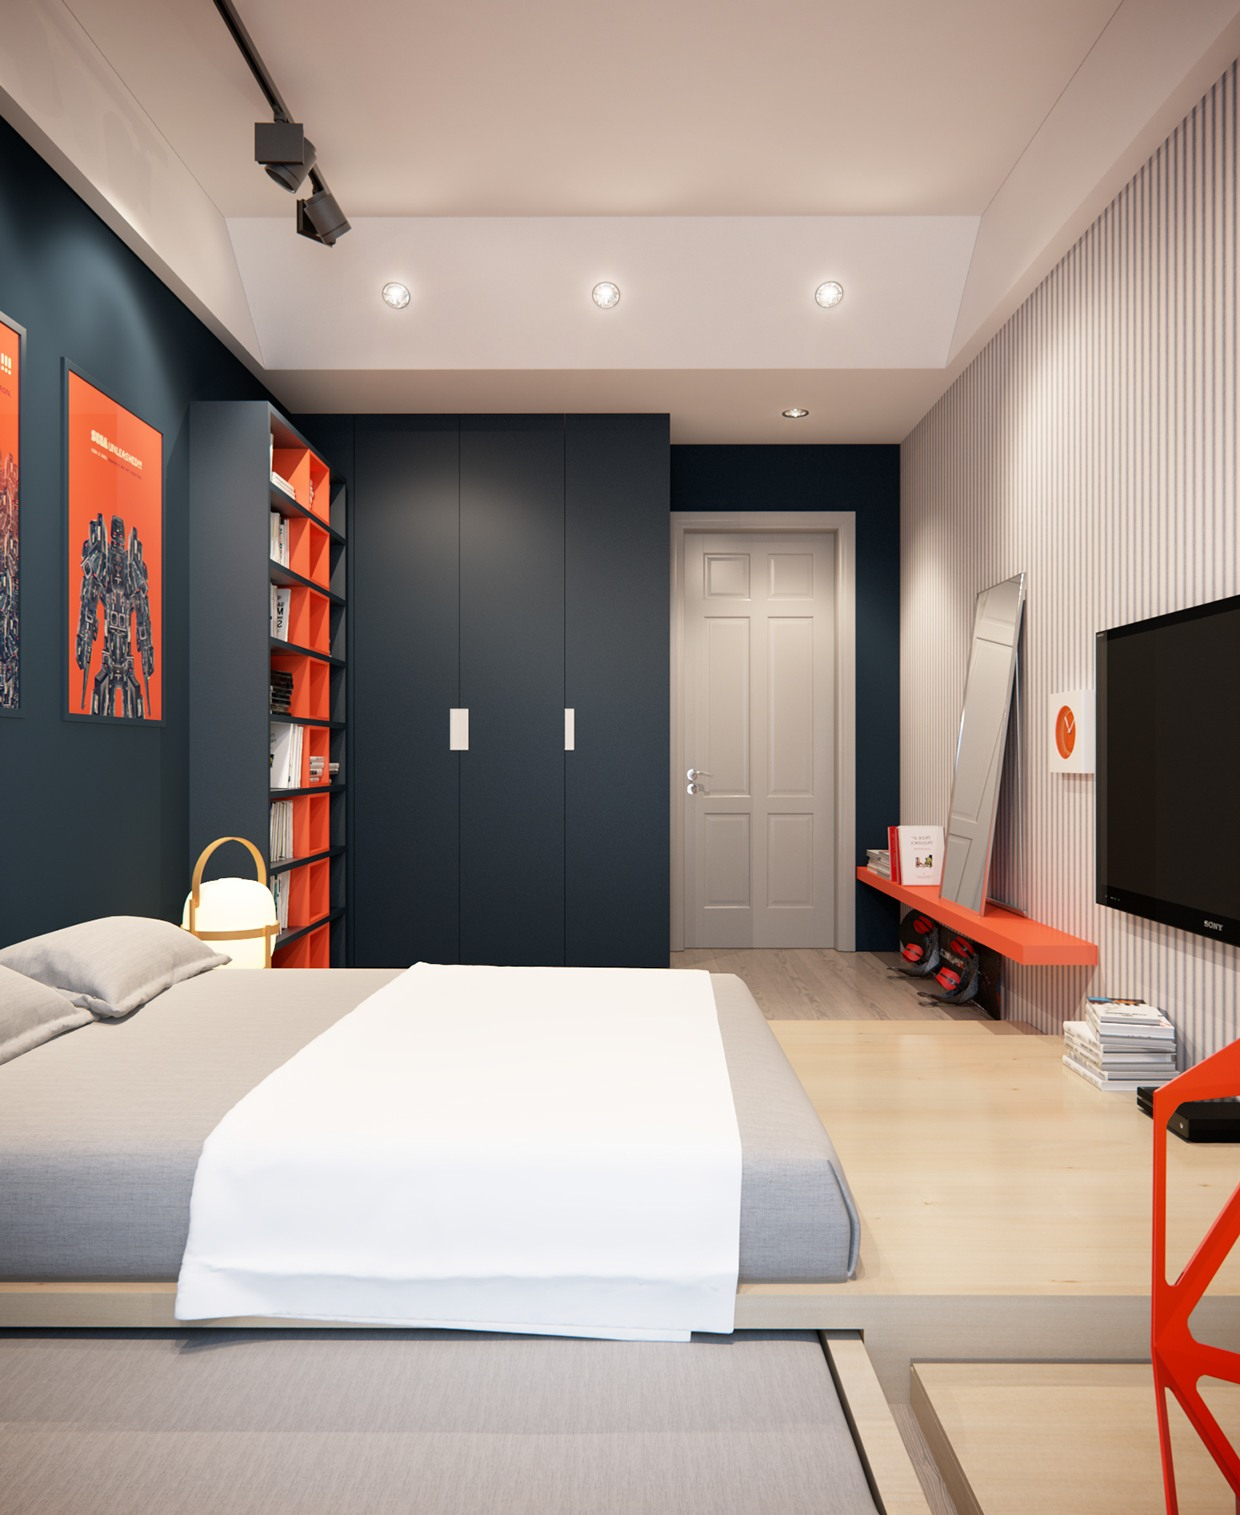 Boys bedroom design interior design ideas for Interior bed design images